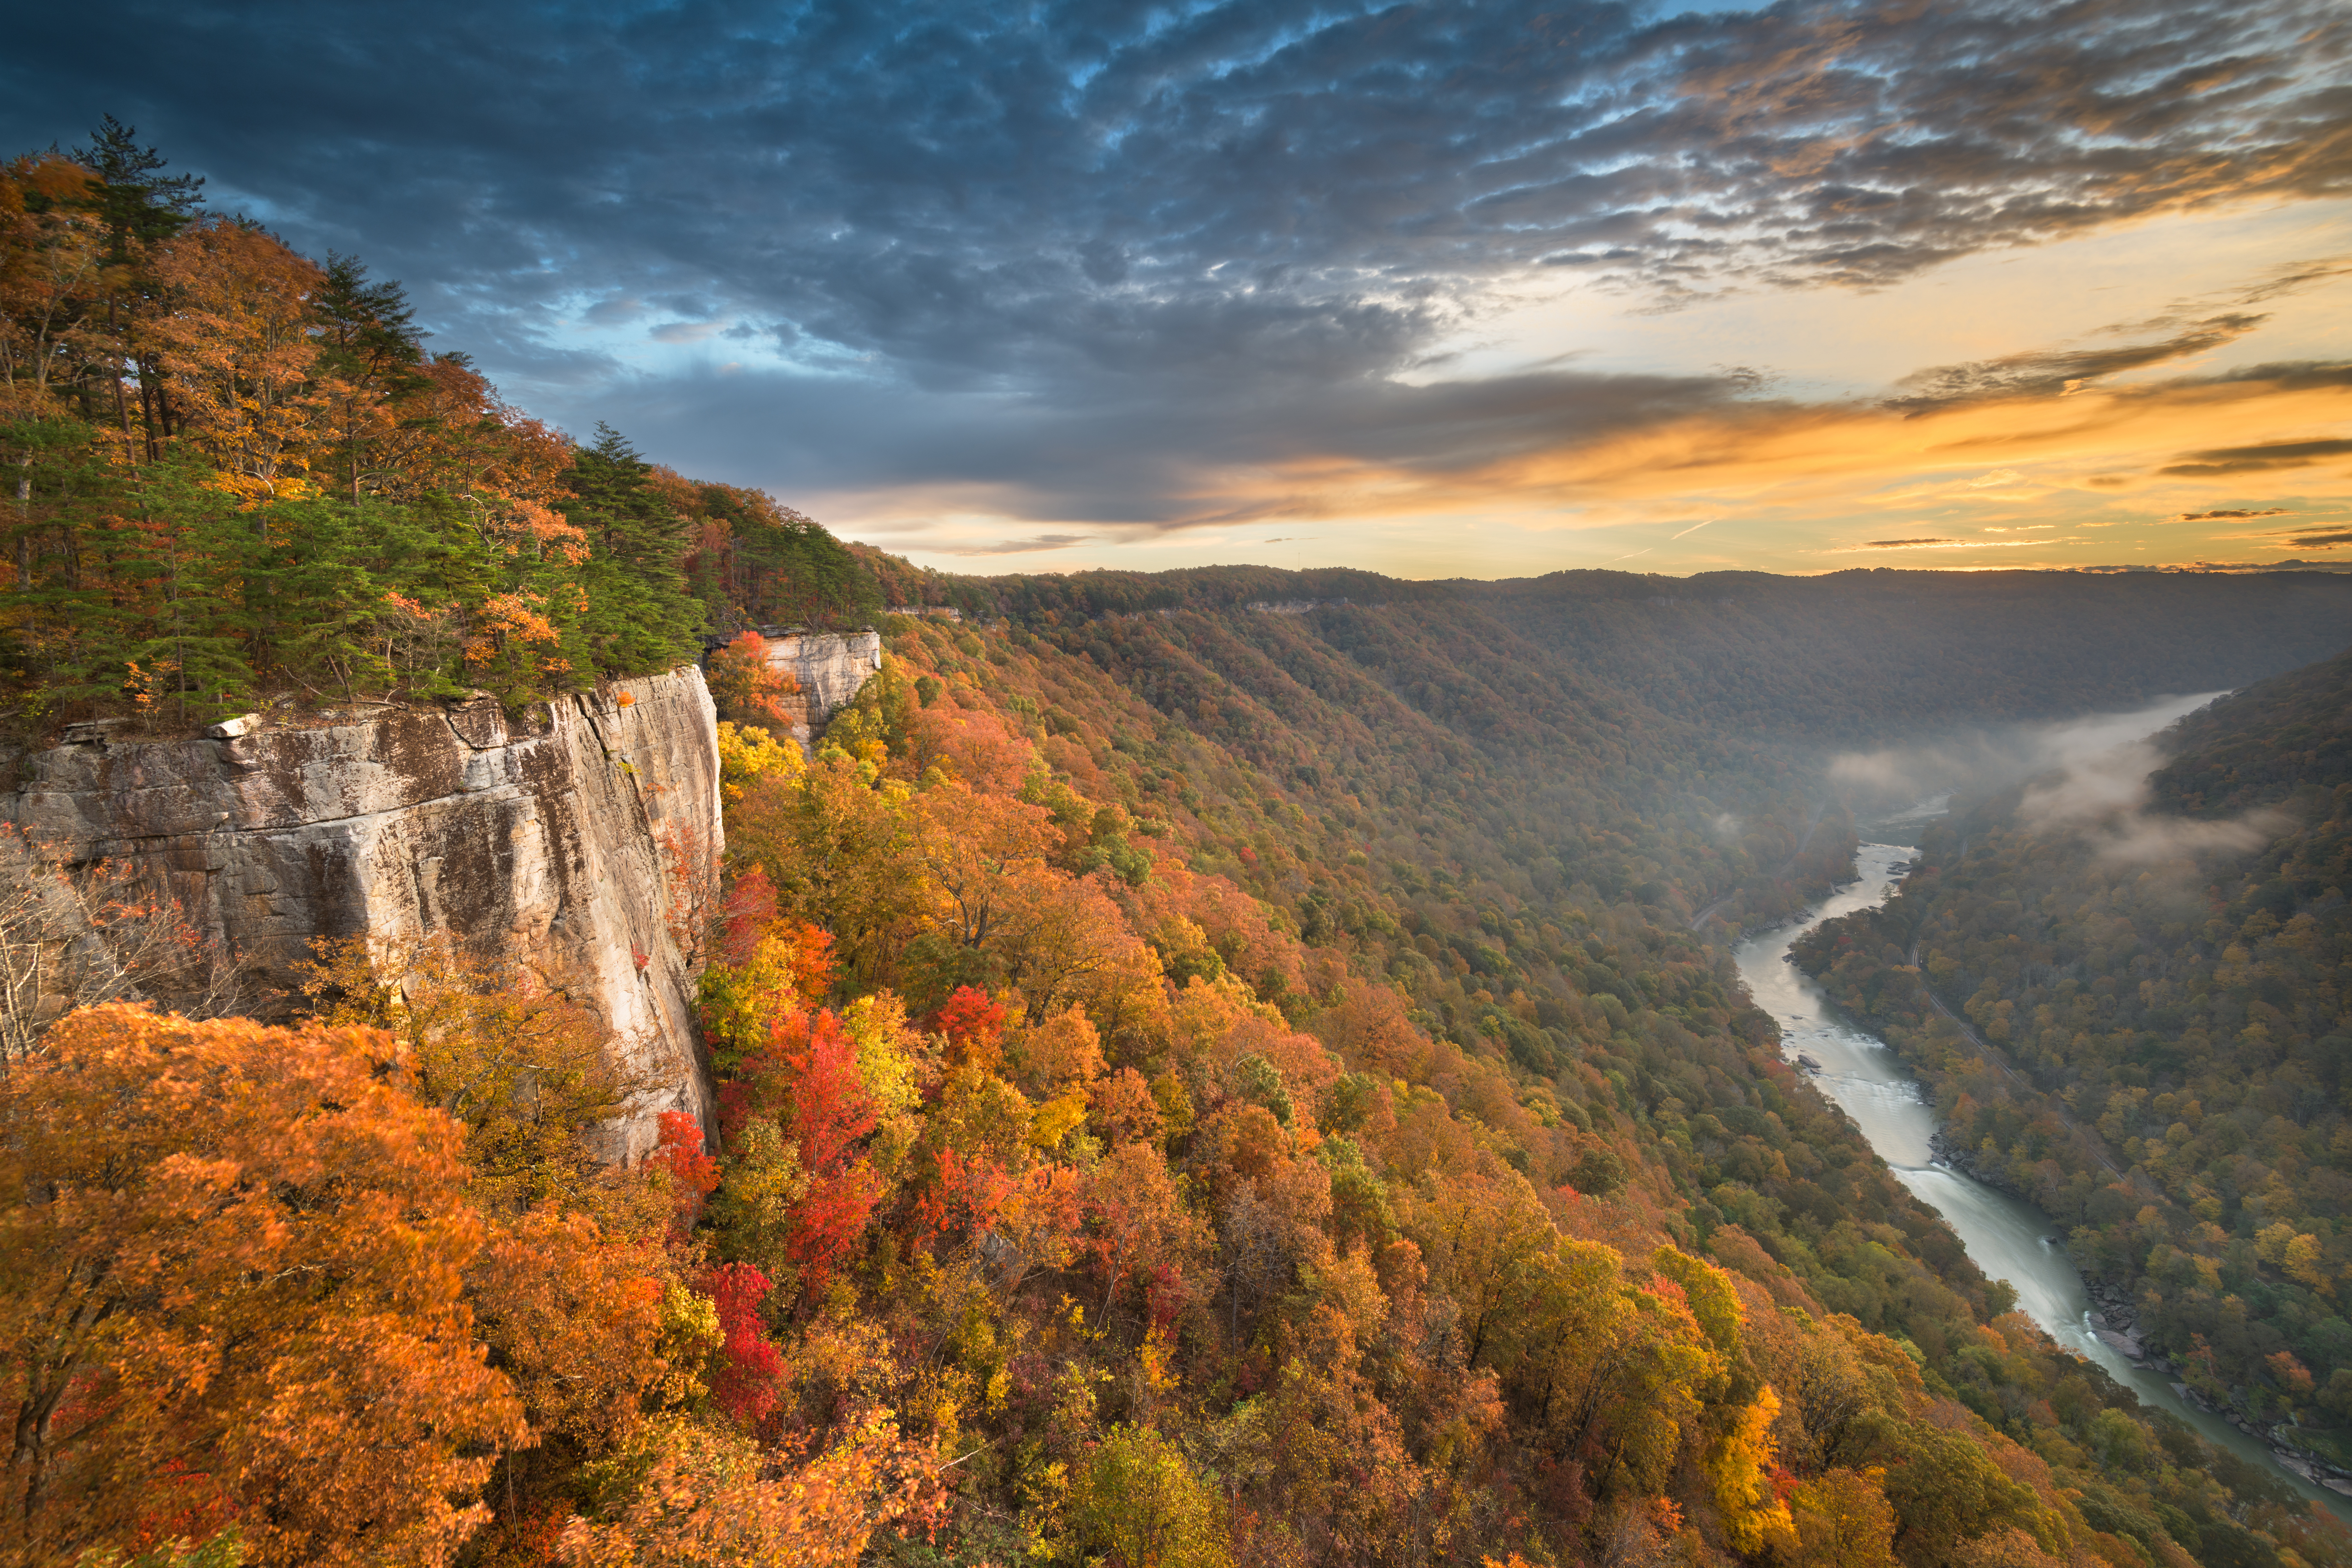 New River Gorge in West Virginia is a short detour for RV snowbirds traveling to Florida on I-77